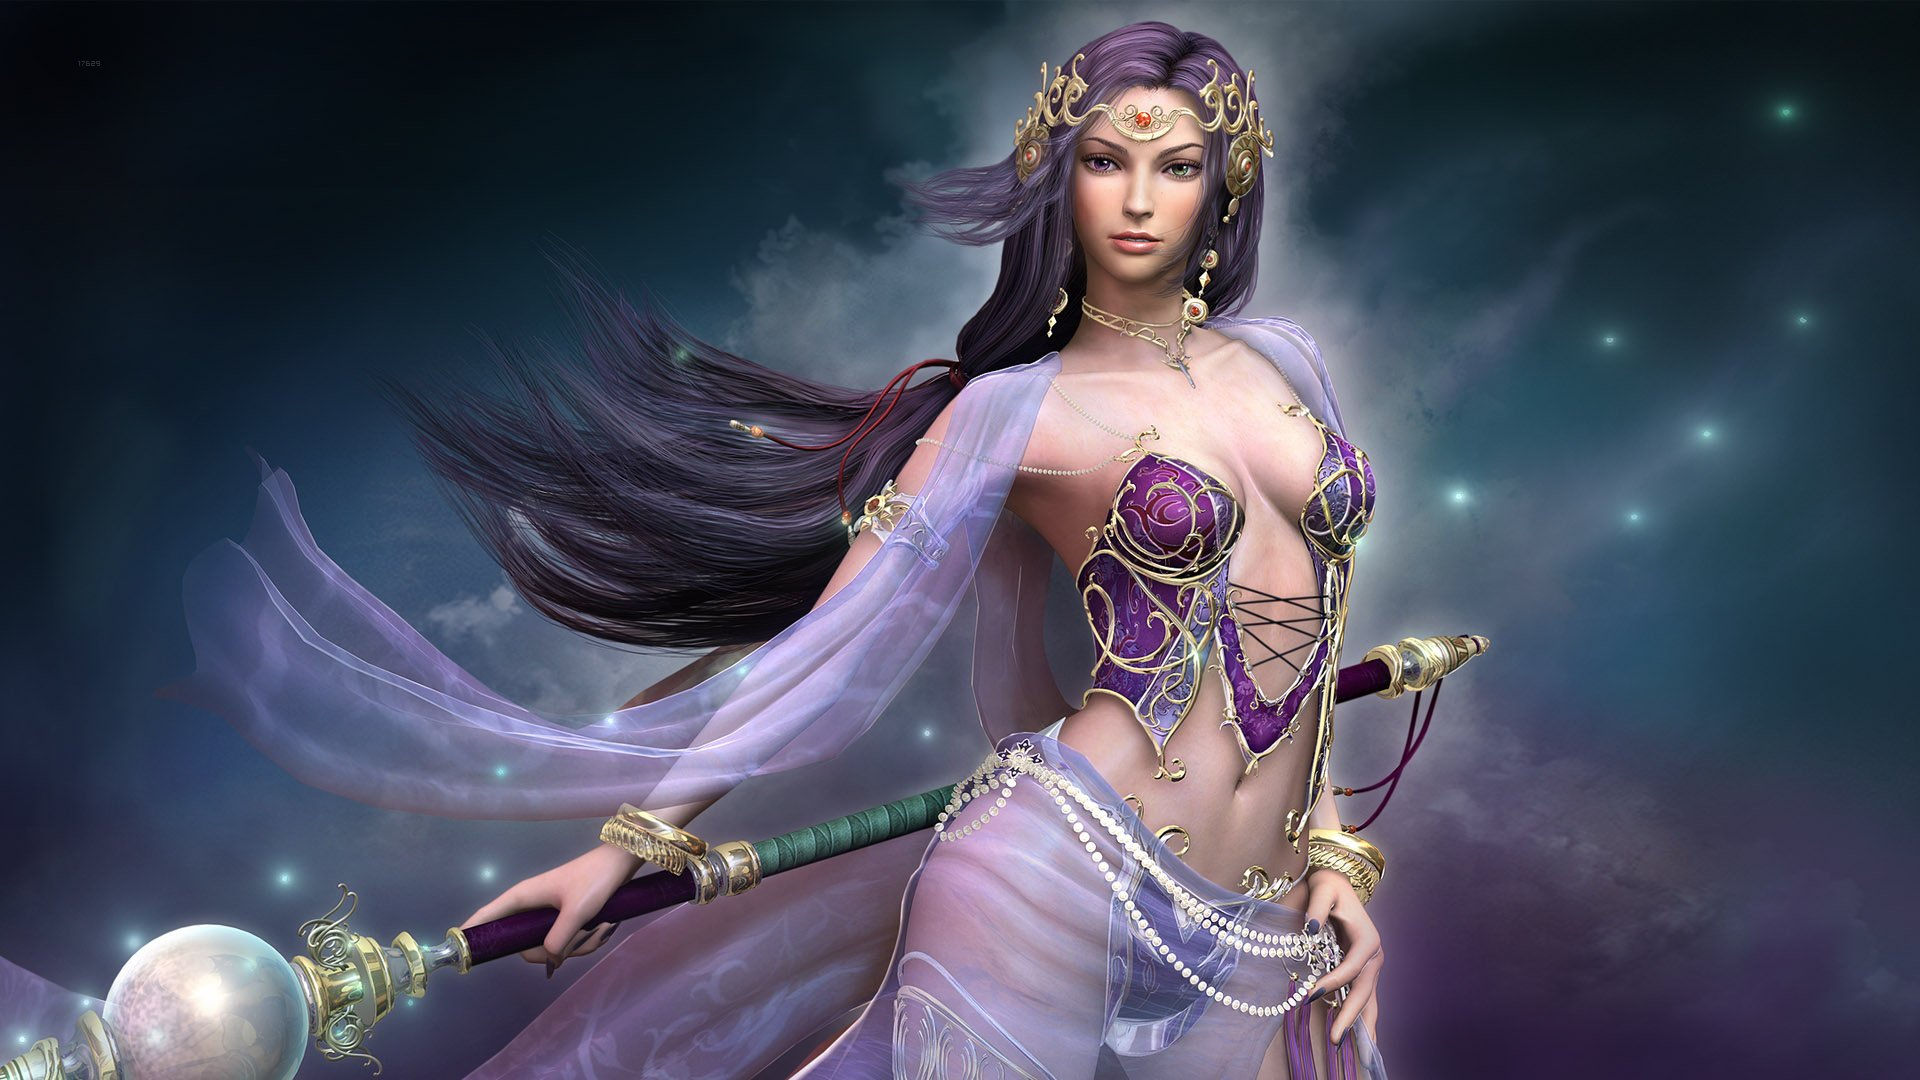 Fantasy - Women  Fantasy Woman Wallpaper